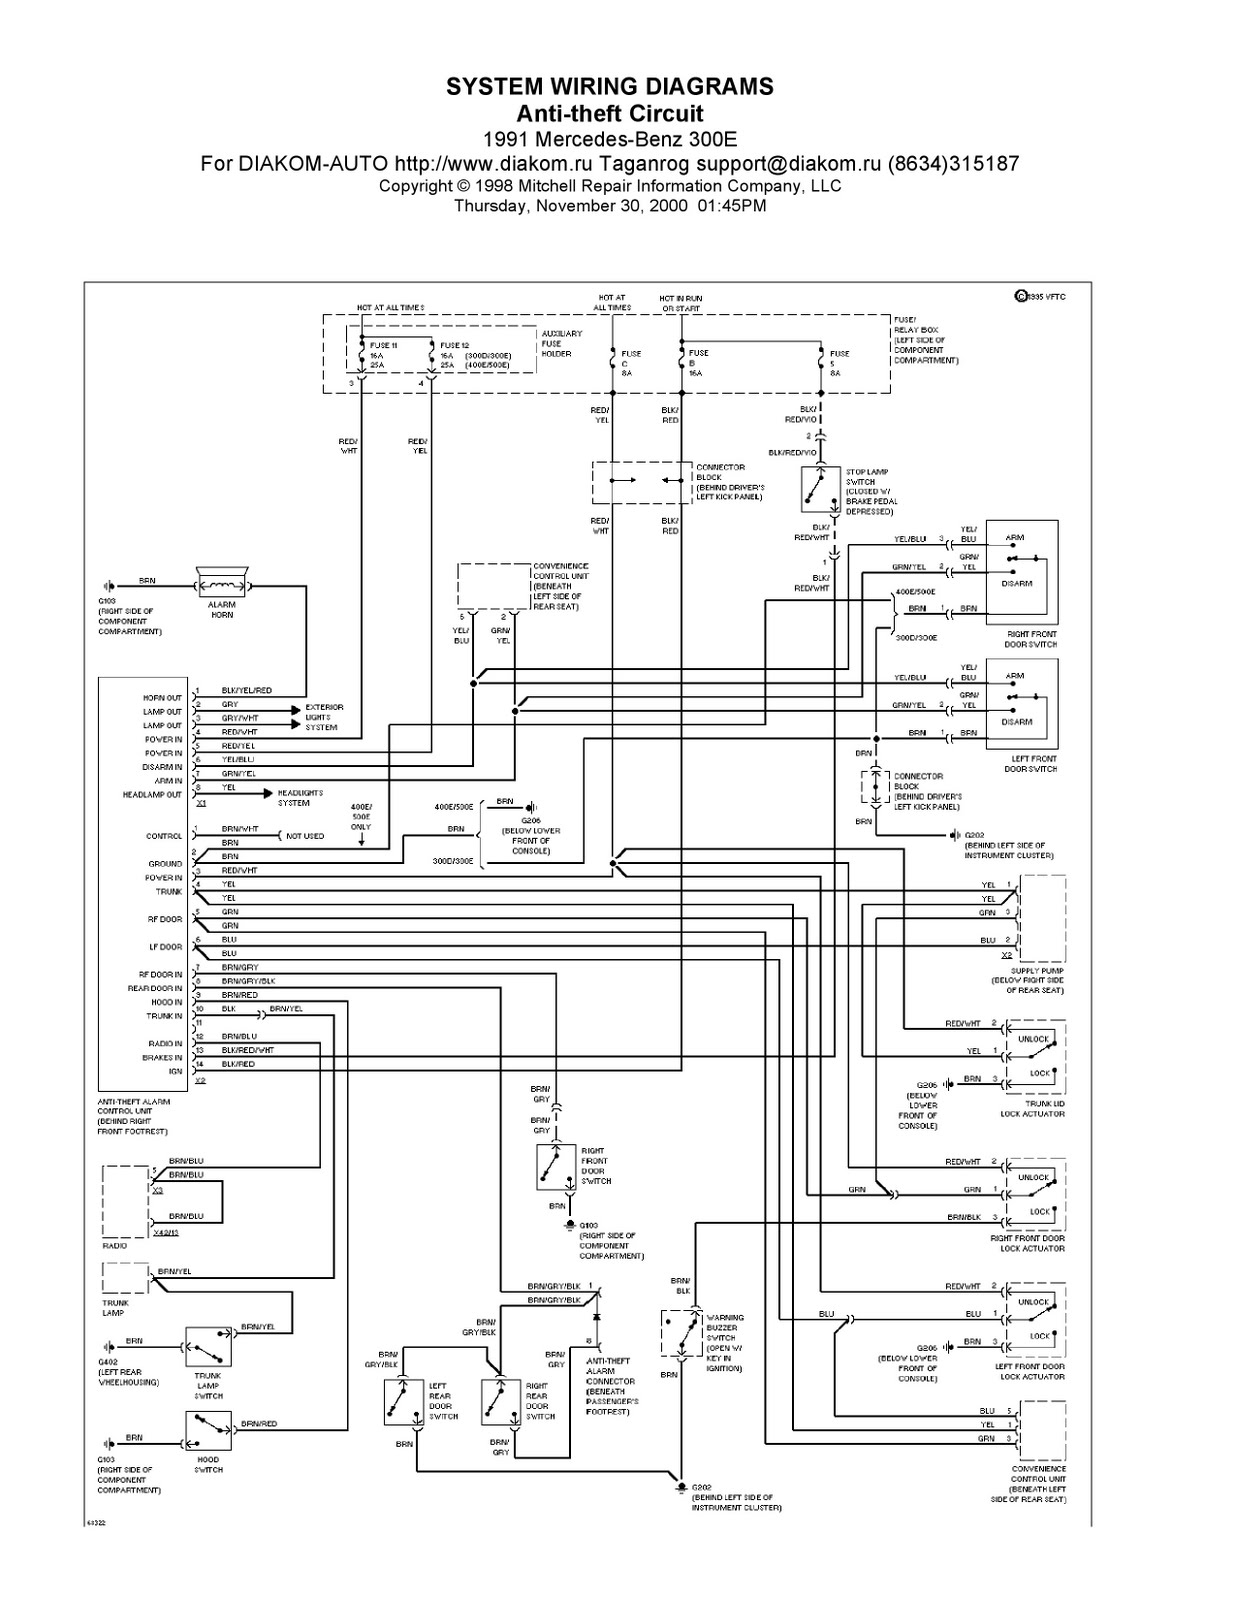 radio wiring diagram for 1997 subaru impreza radio discover your 1989 mercedes benz 300e wiring diagram